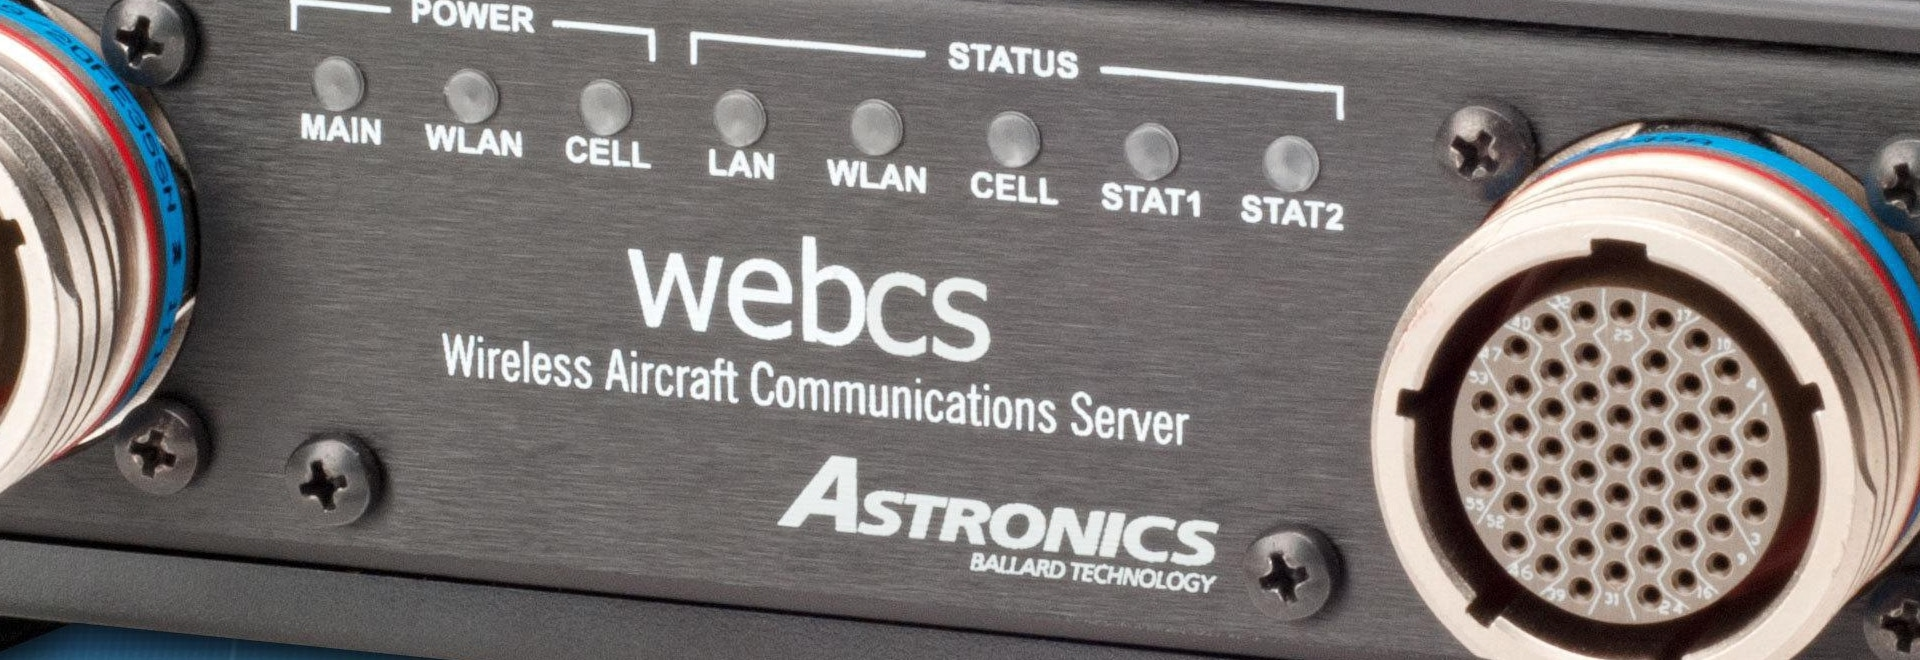 Astronics Ballard Technology webCS securely bridges avionics data ...